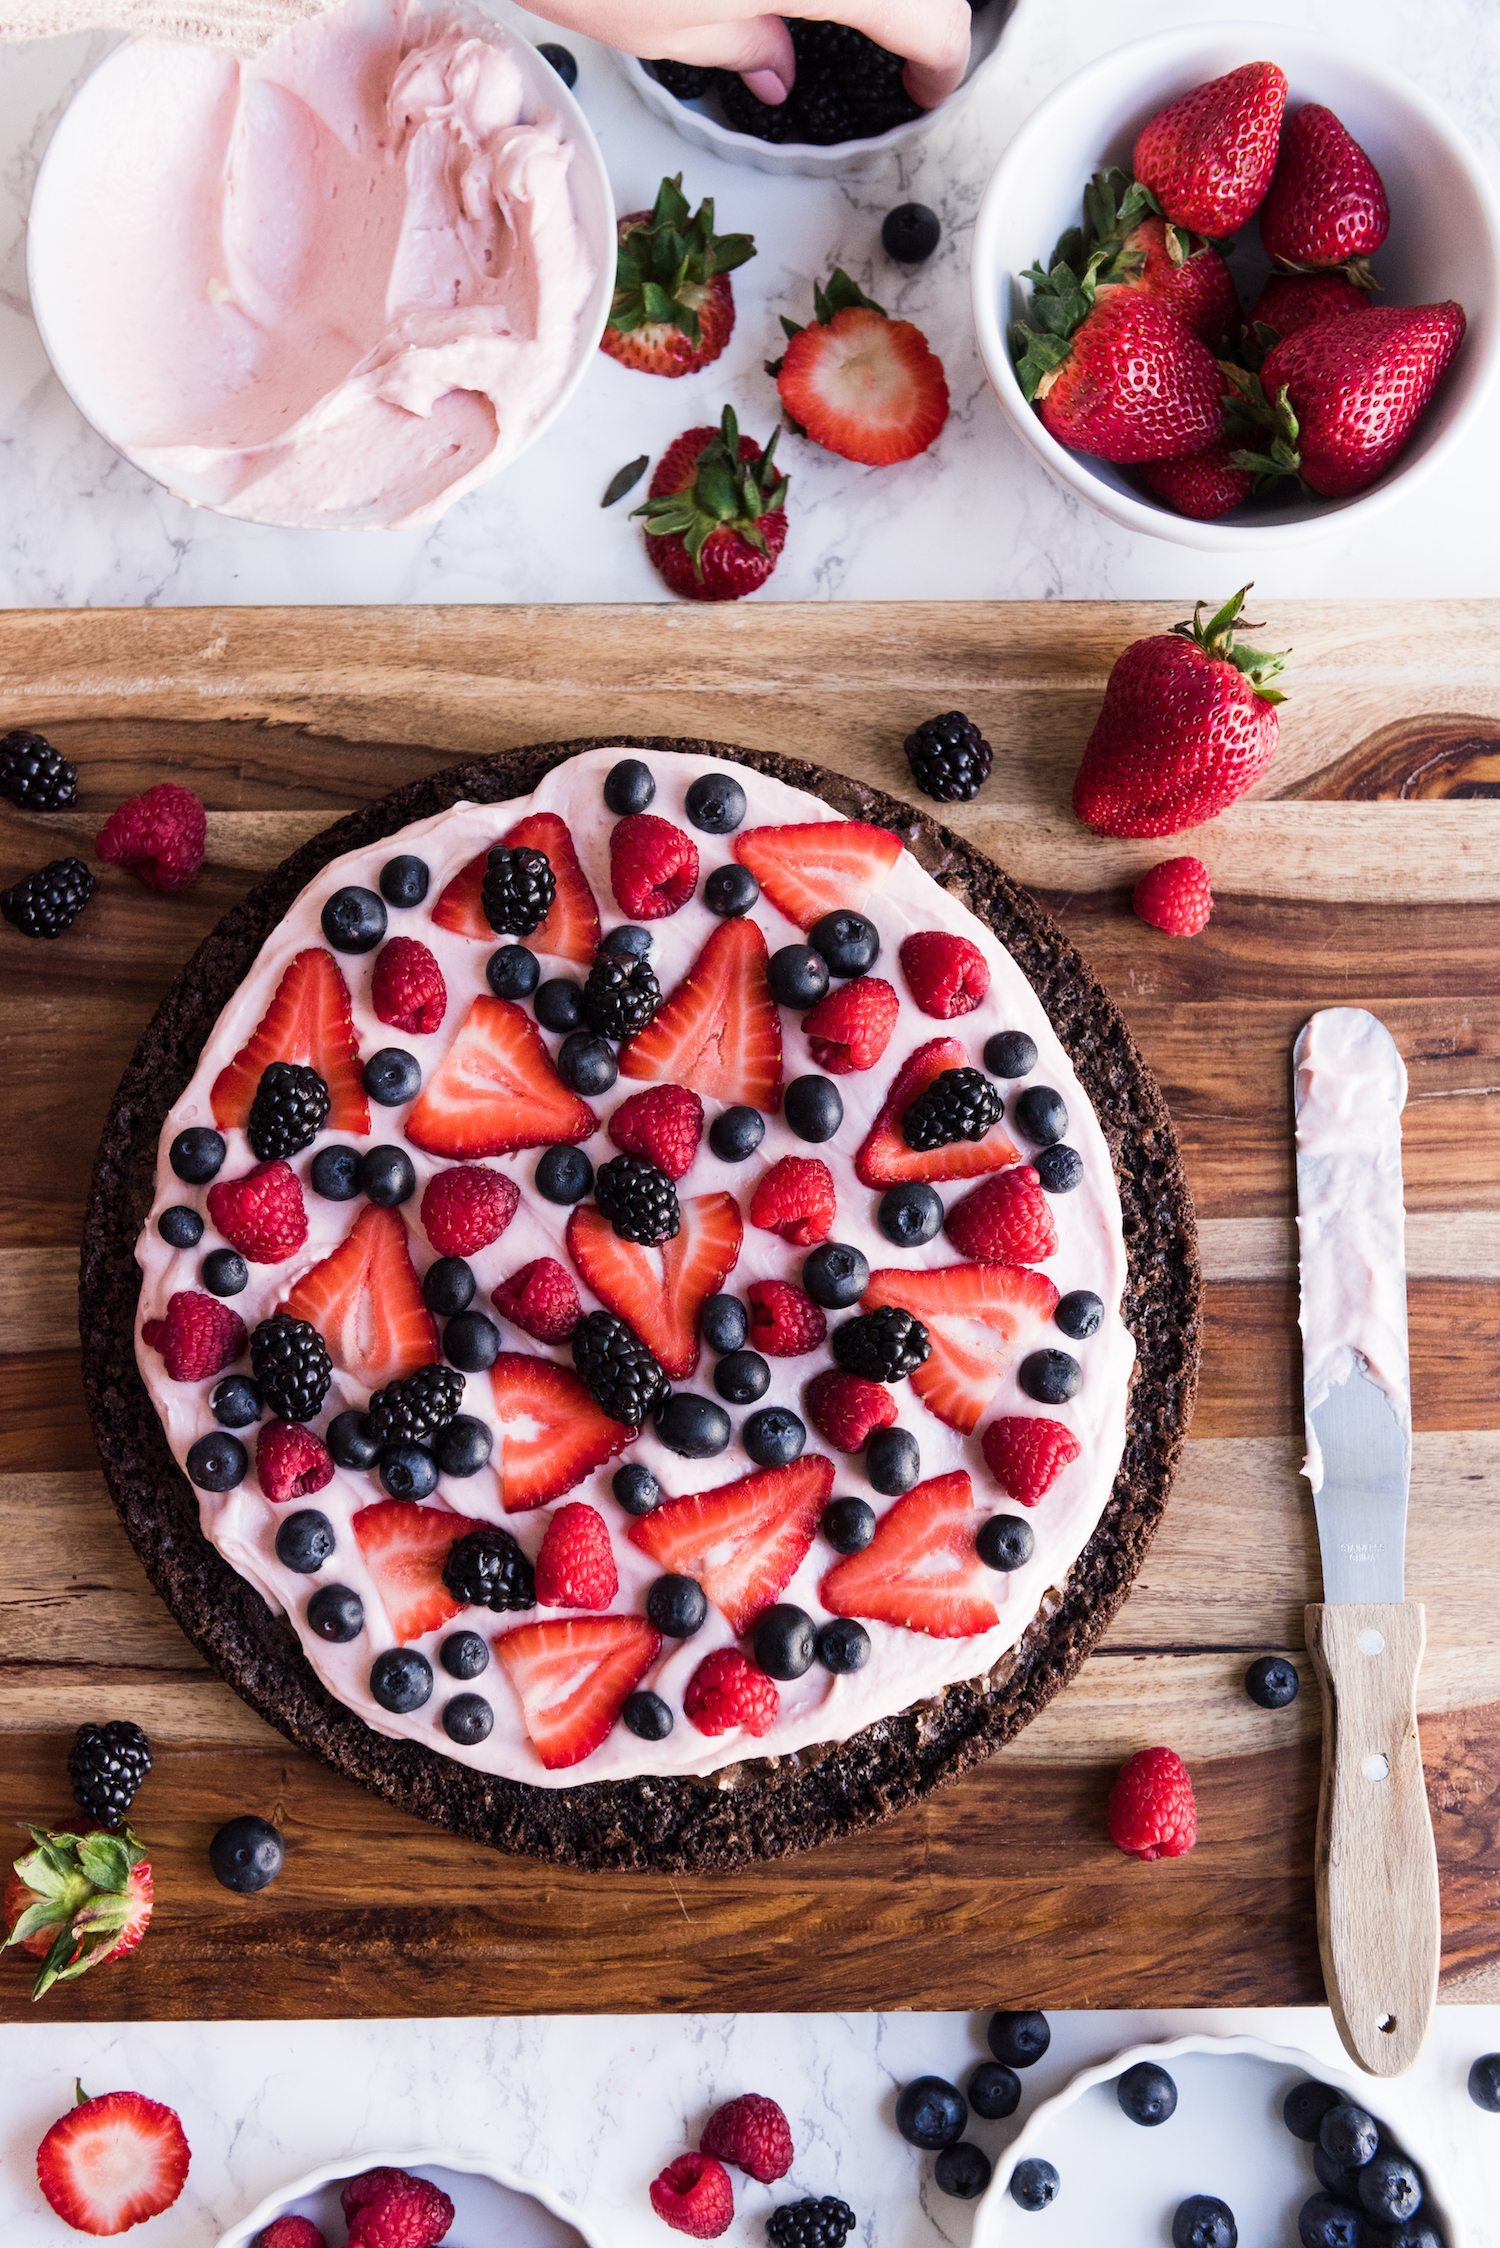 Brownie Pizza Recipe with Strawberry Buttercream Frosting | Love entertaining? Visit The Sweetest Occasion for fun party recipes, entertaining tips, festive cocktail recipes, party ideas and more!